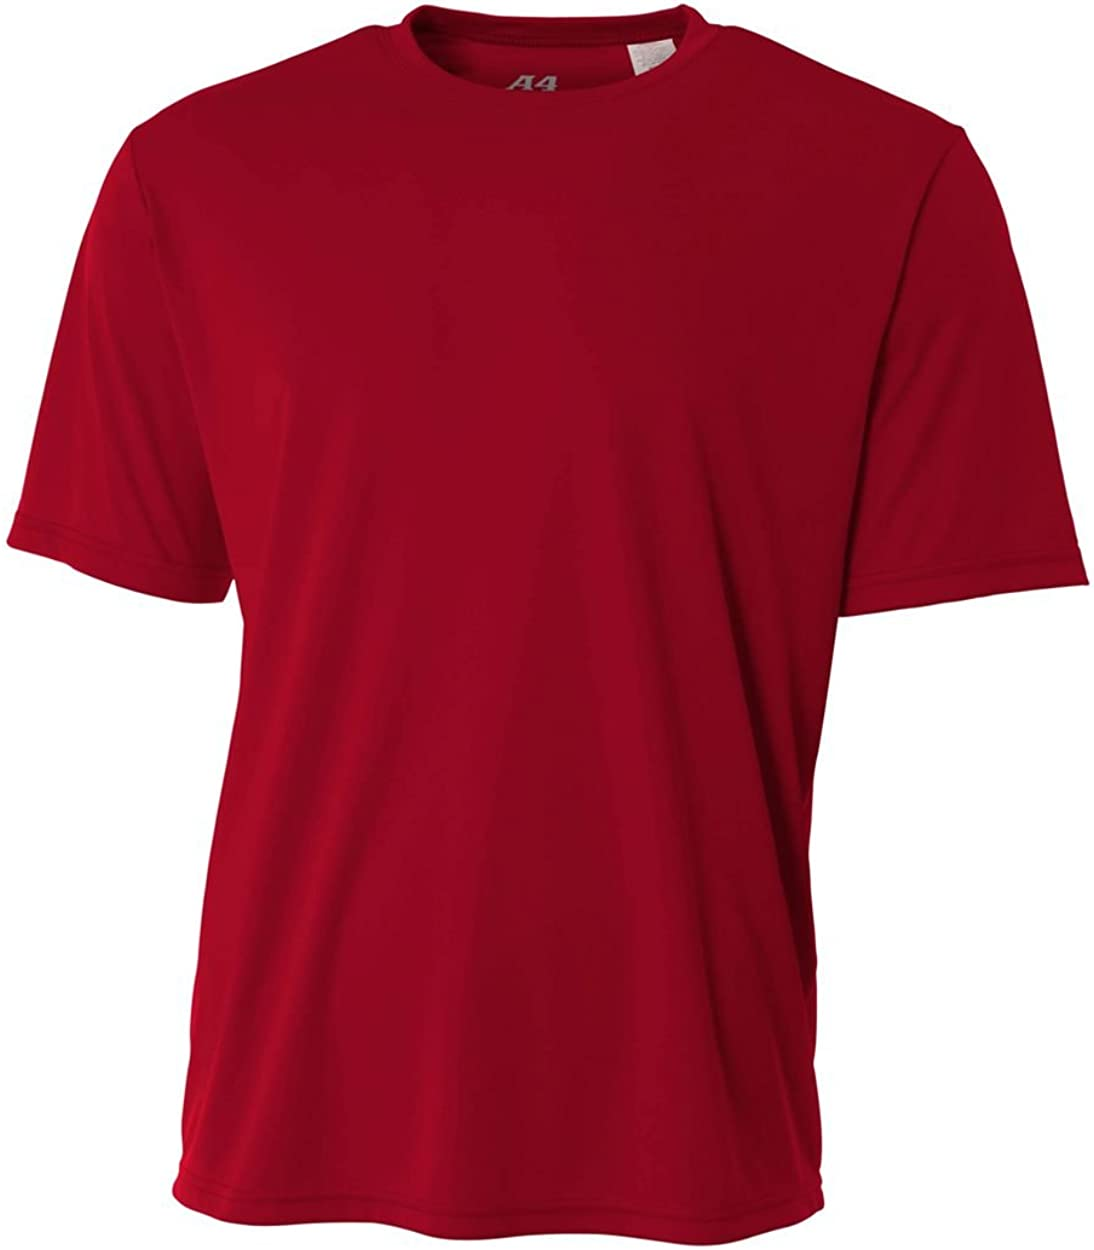 A4 Youth Cooling Performance Crew Short Sleeve Tee